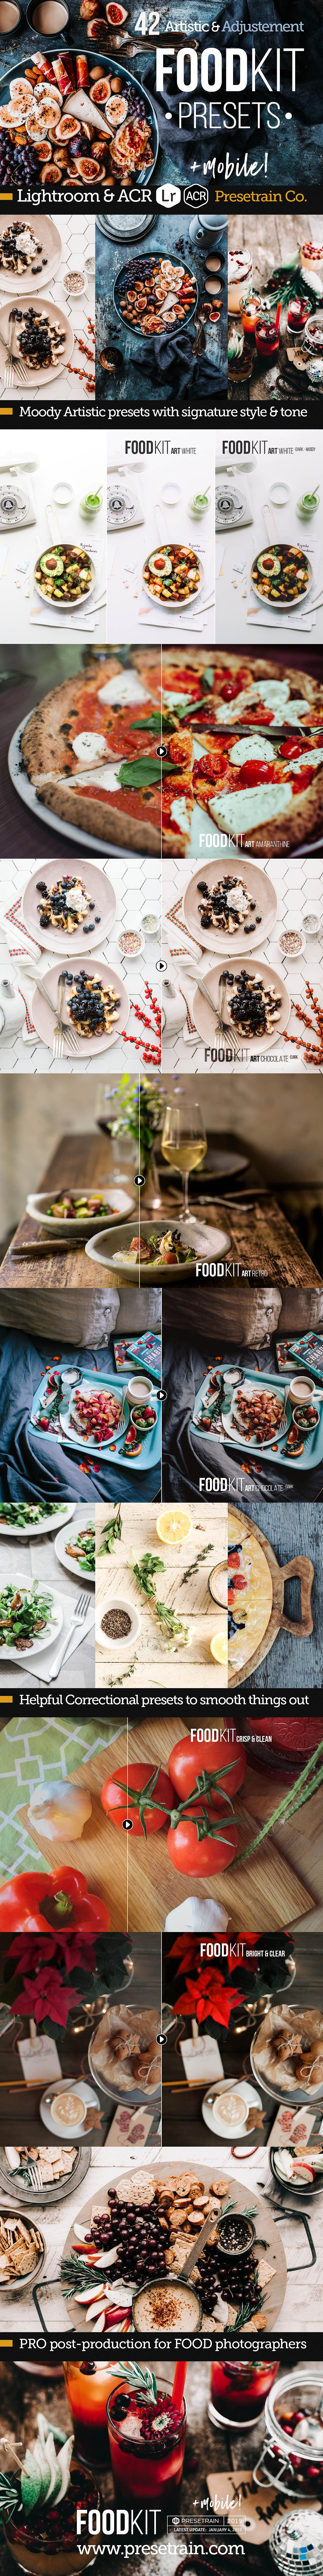 FoodKit - Food Presets for LR & ACR For Food Photography